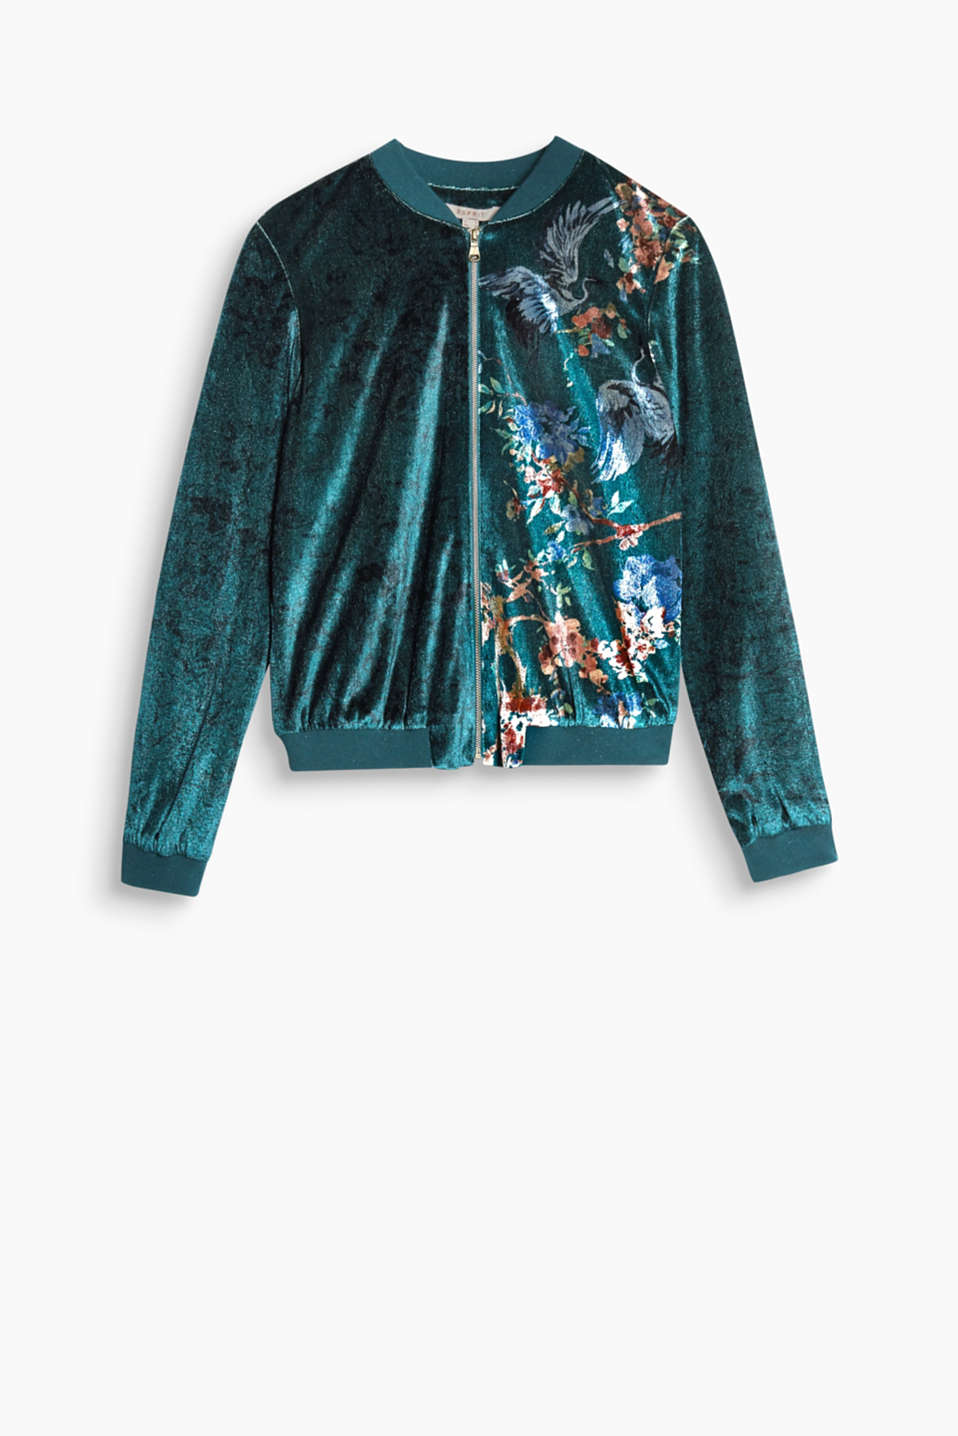 Far Eastern flair! The shimmering velvet and floral print make this bomber jacket extremely eye-catching.